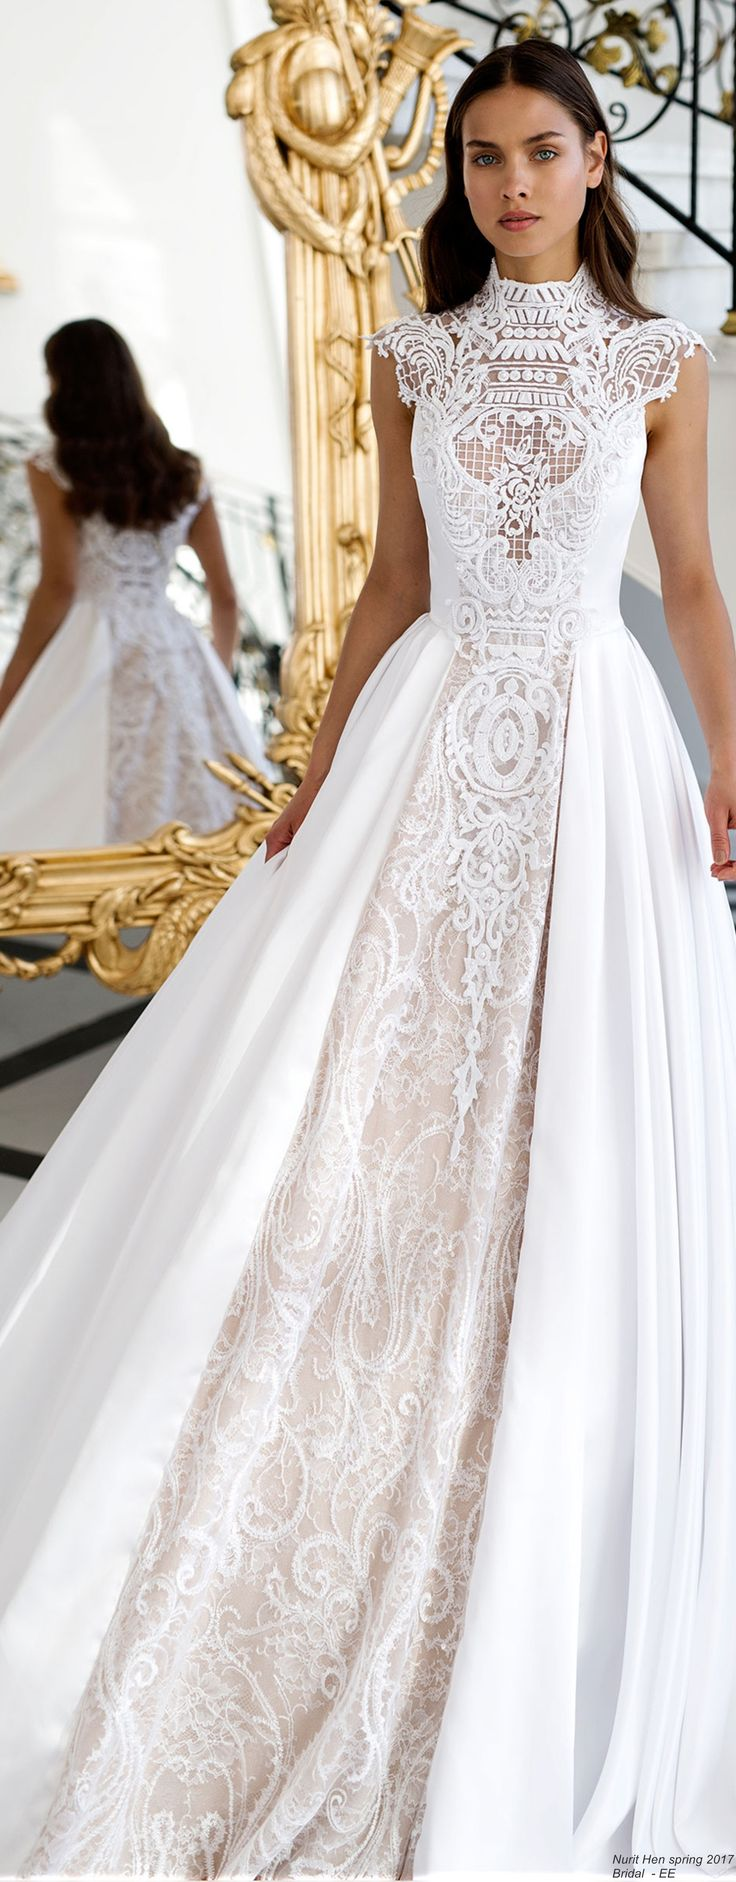 handmade wedding dresses sundress wedding dress Find this Pin and more on Queen Dresses